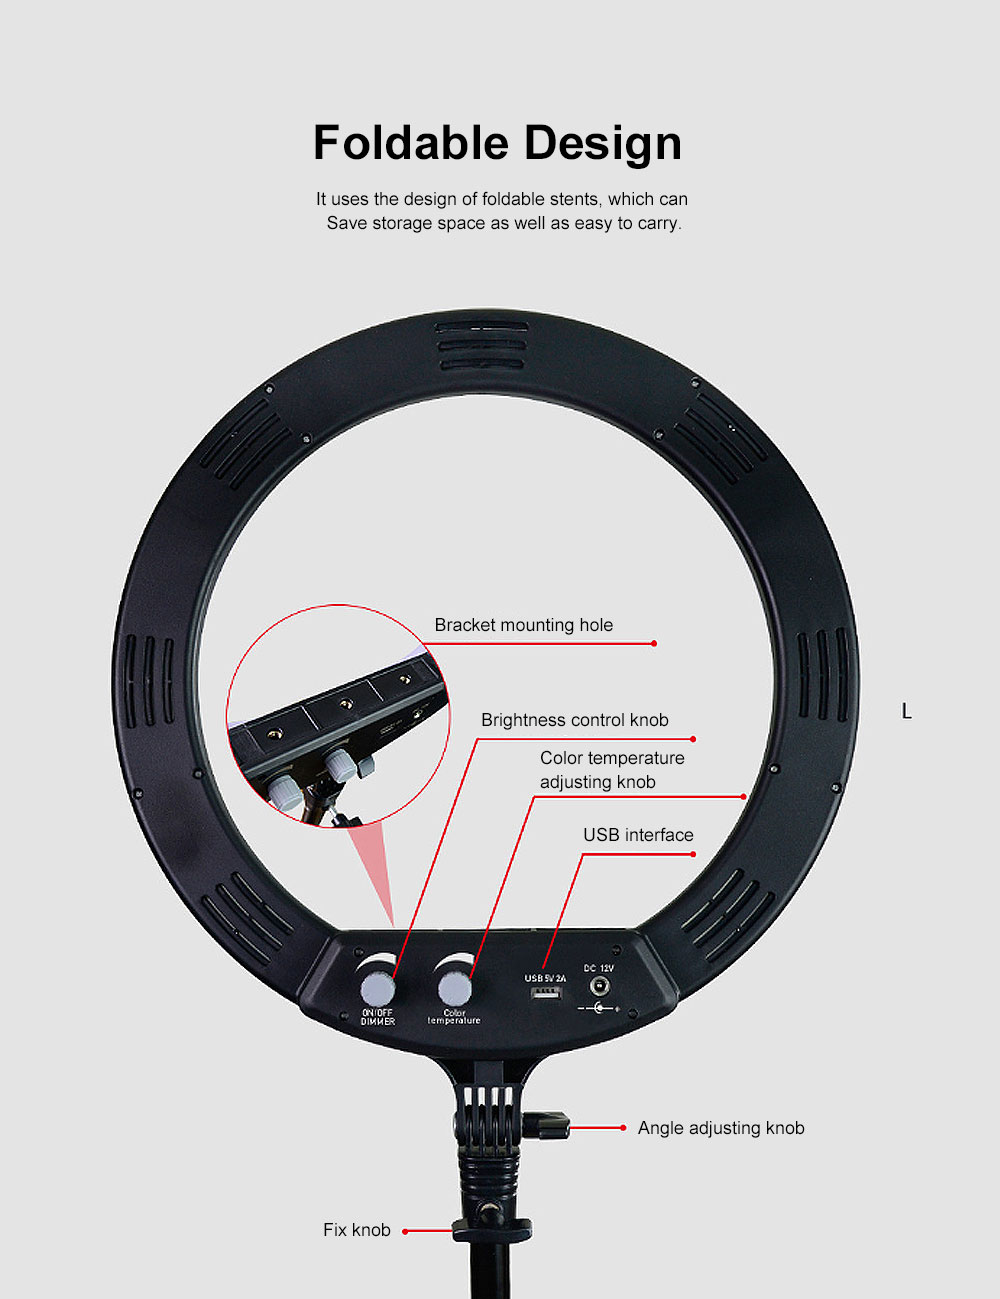 Selfie Desktop Ring Light, Dimmable Ring Light for YouTube Live Streaming, Portrait Photography, LED Round Fill Light 14 inches 4